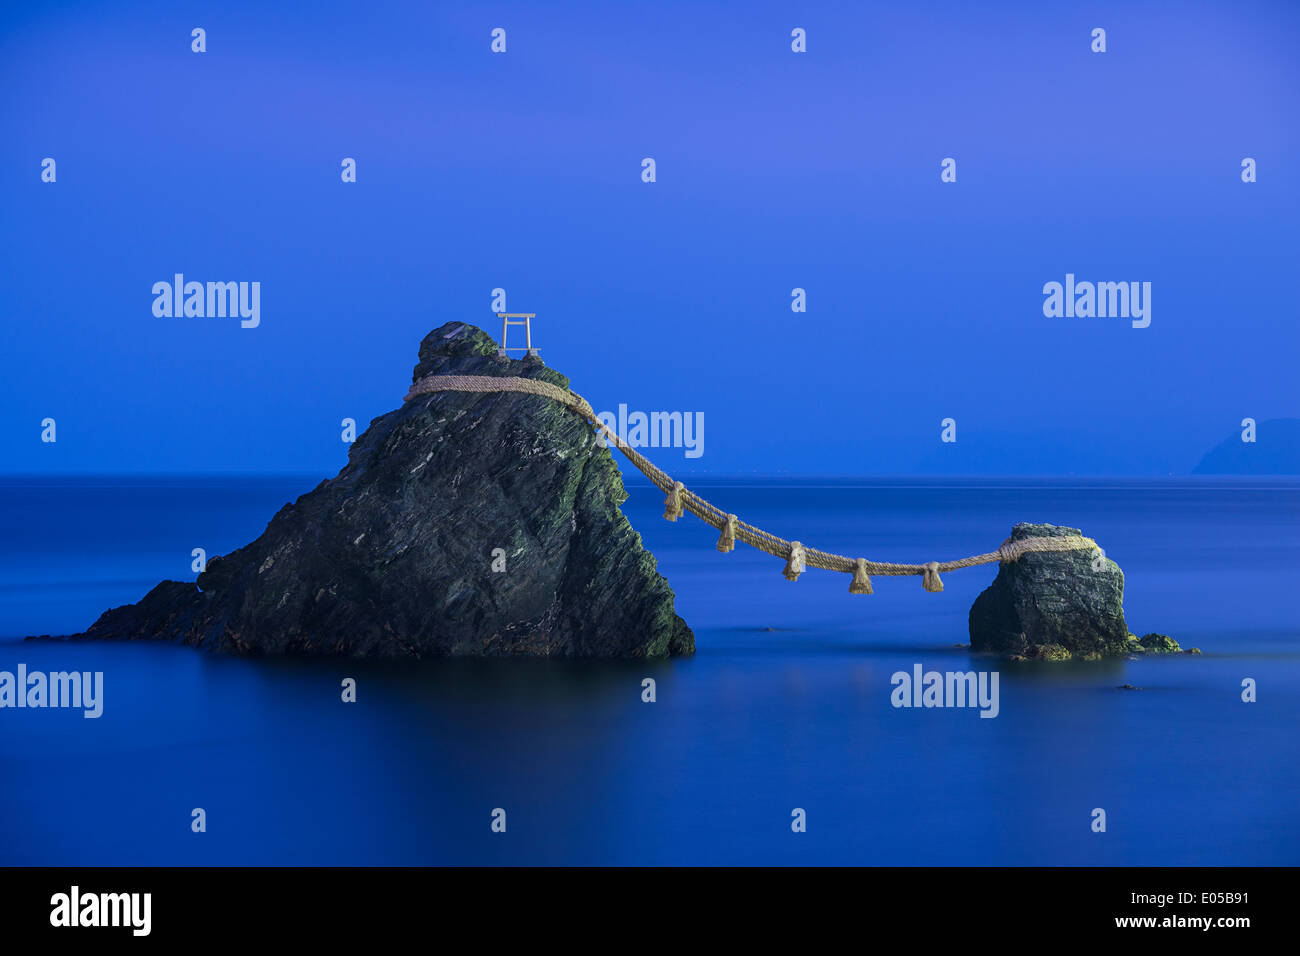 Meoto Iwa Rocks, Futami, Mie Prefecture, Japan. - Stock Image